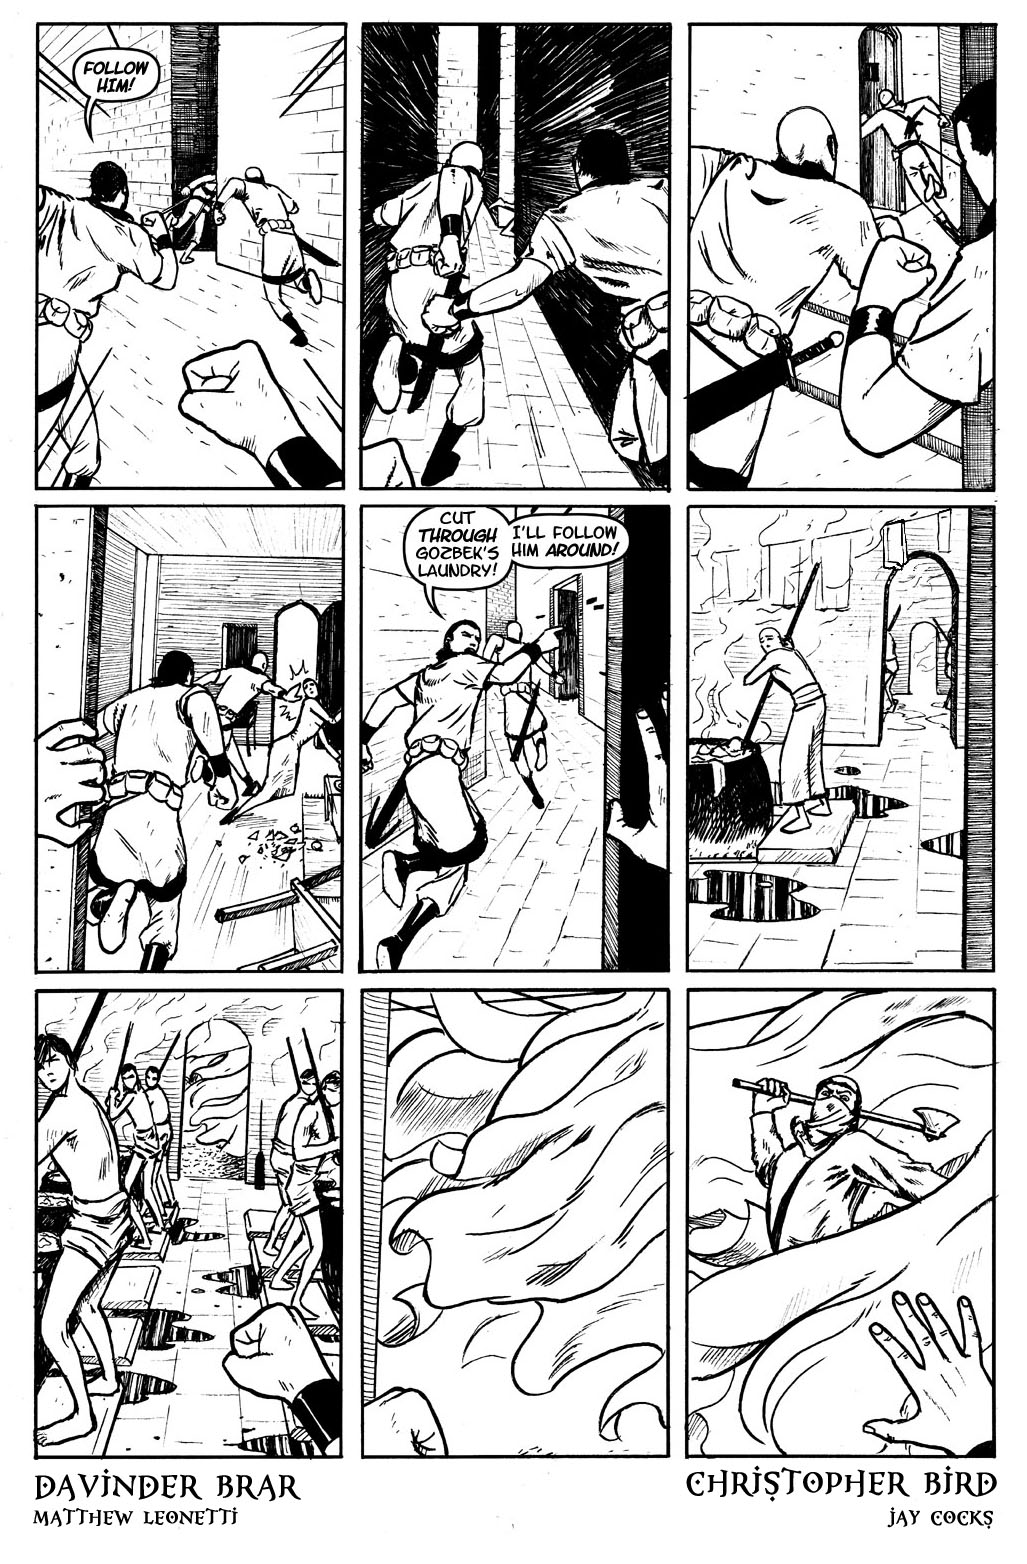 Book 3, page 10